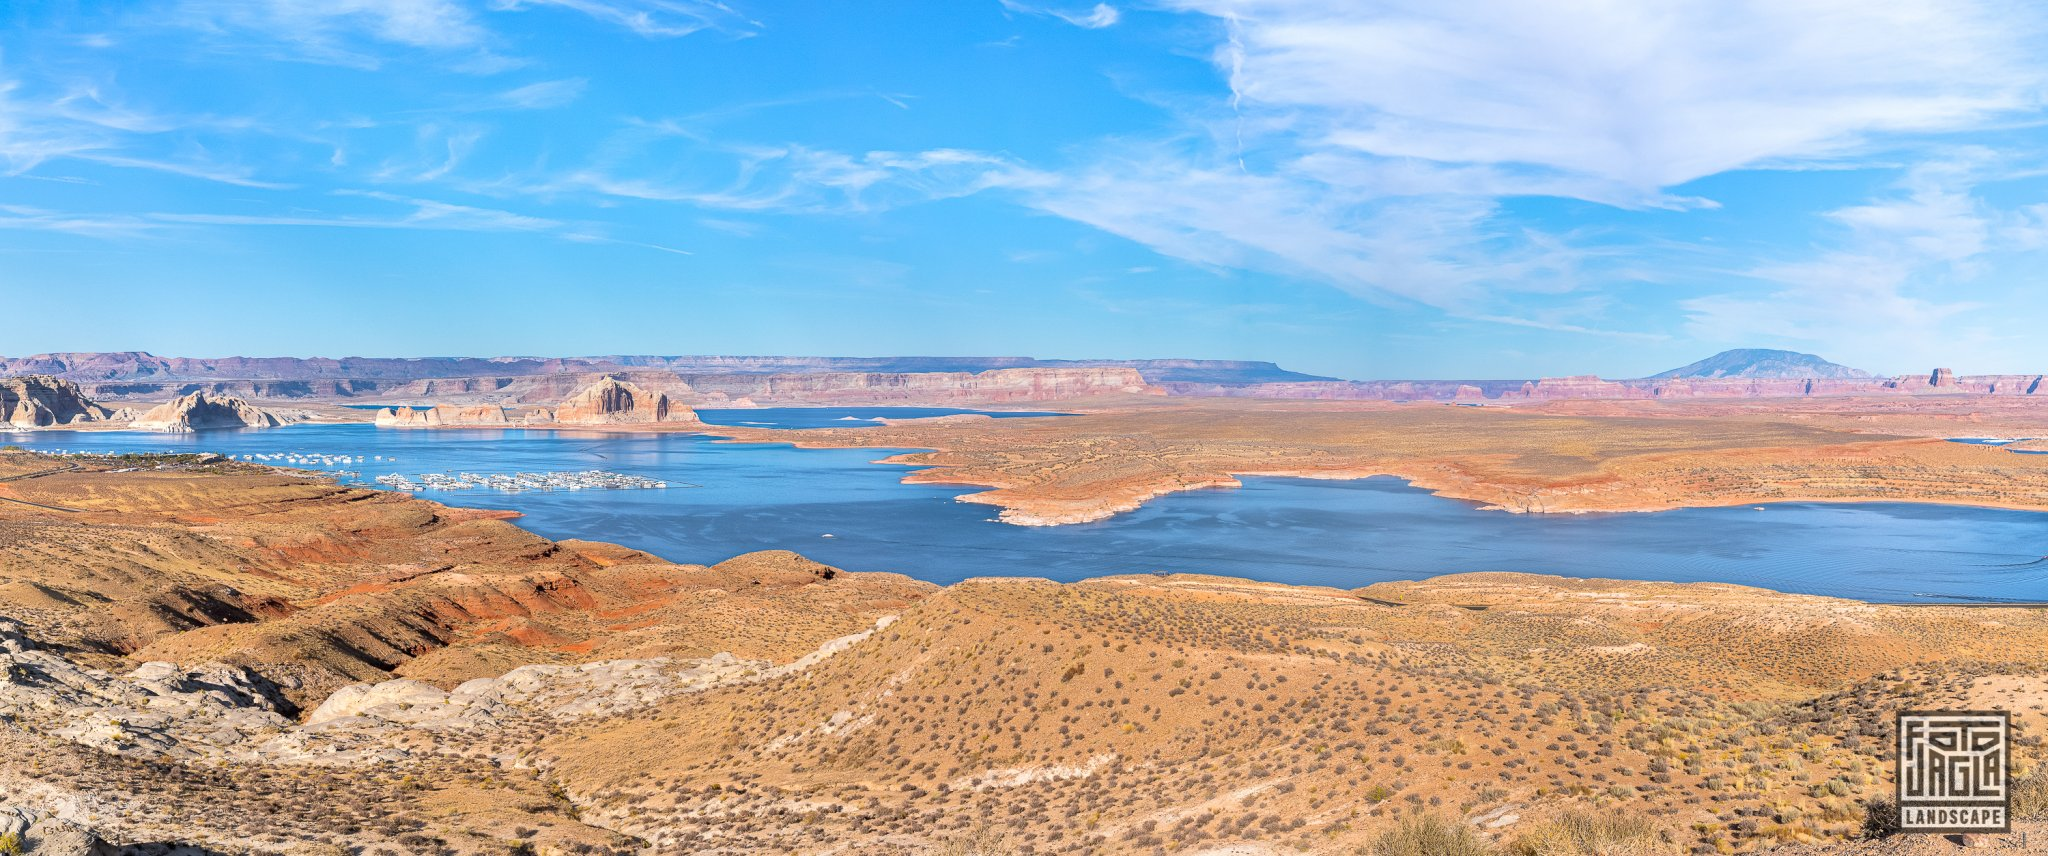 Wahweap Overlook over Lake Powell, Page Arizona, USA 2019